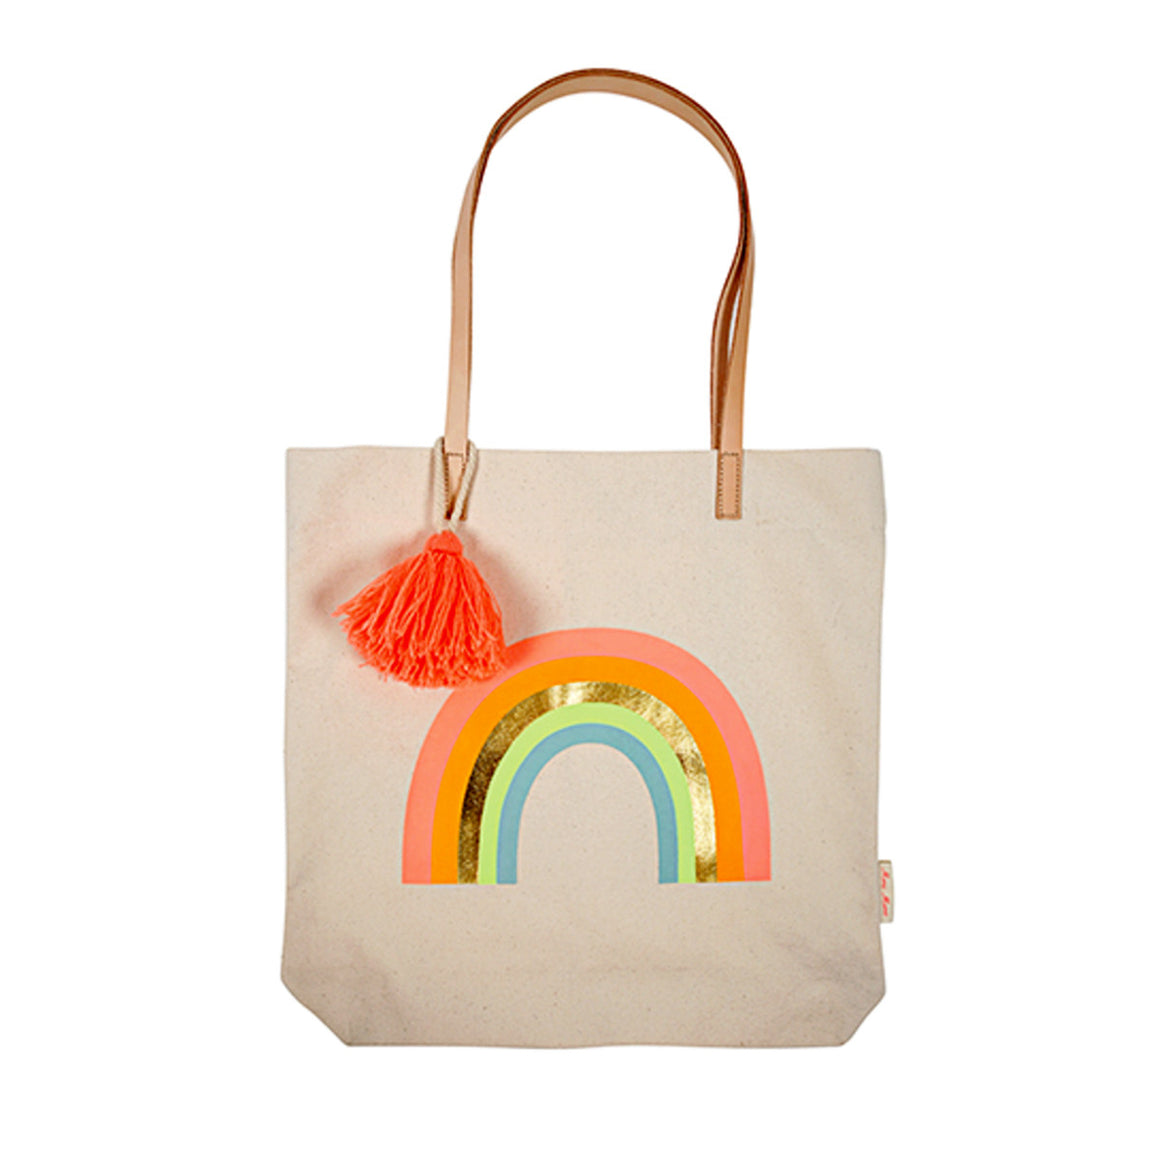 MM - Cartera Arcoiris